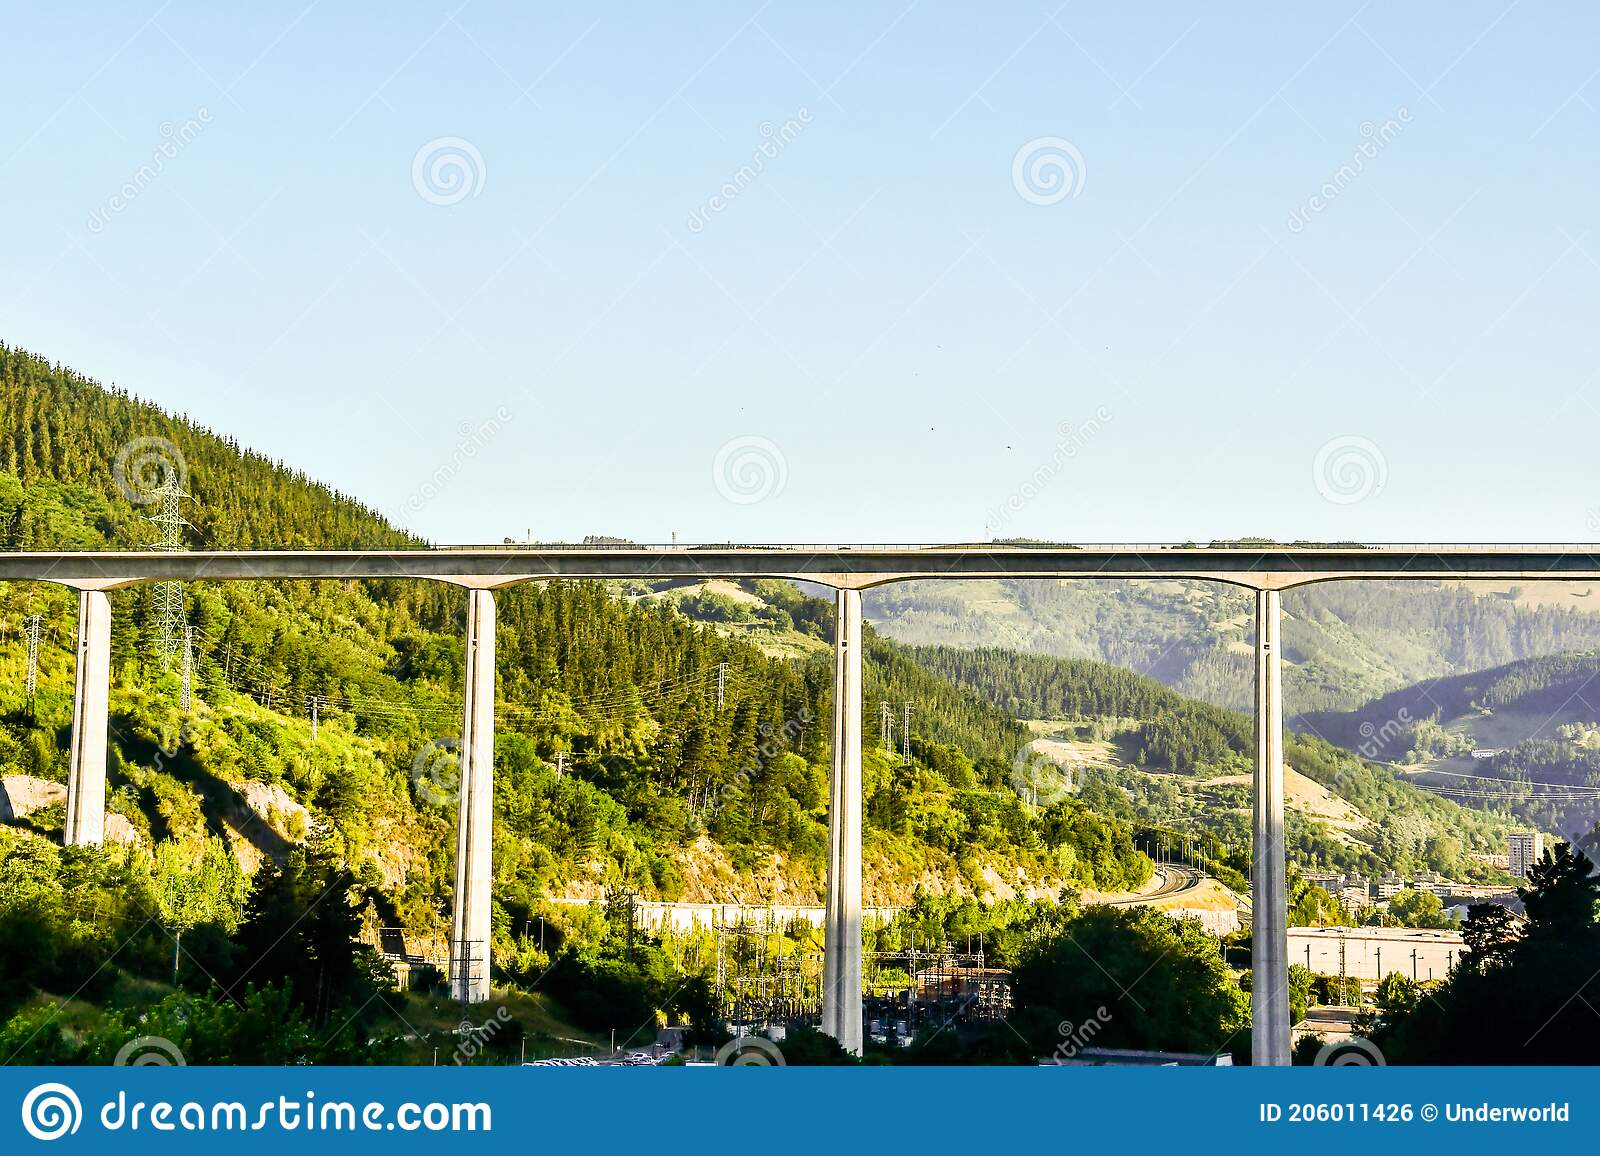 Camino Aragon Photos Free Royalty Free Stock Photos From Dreamstime